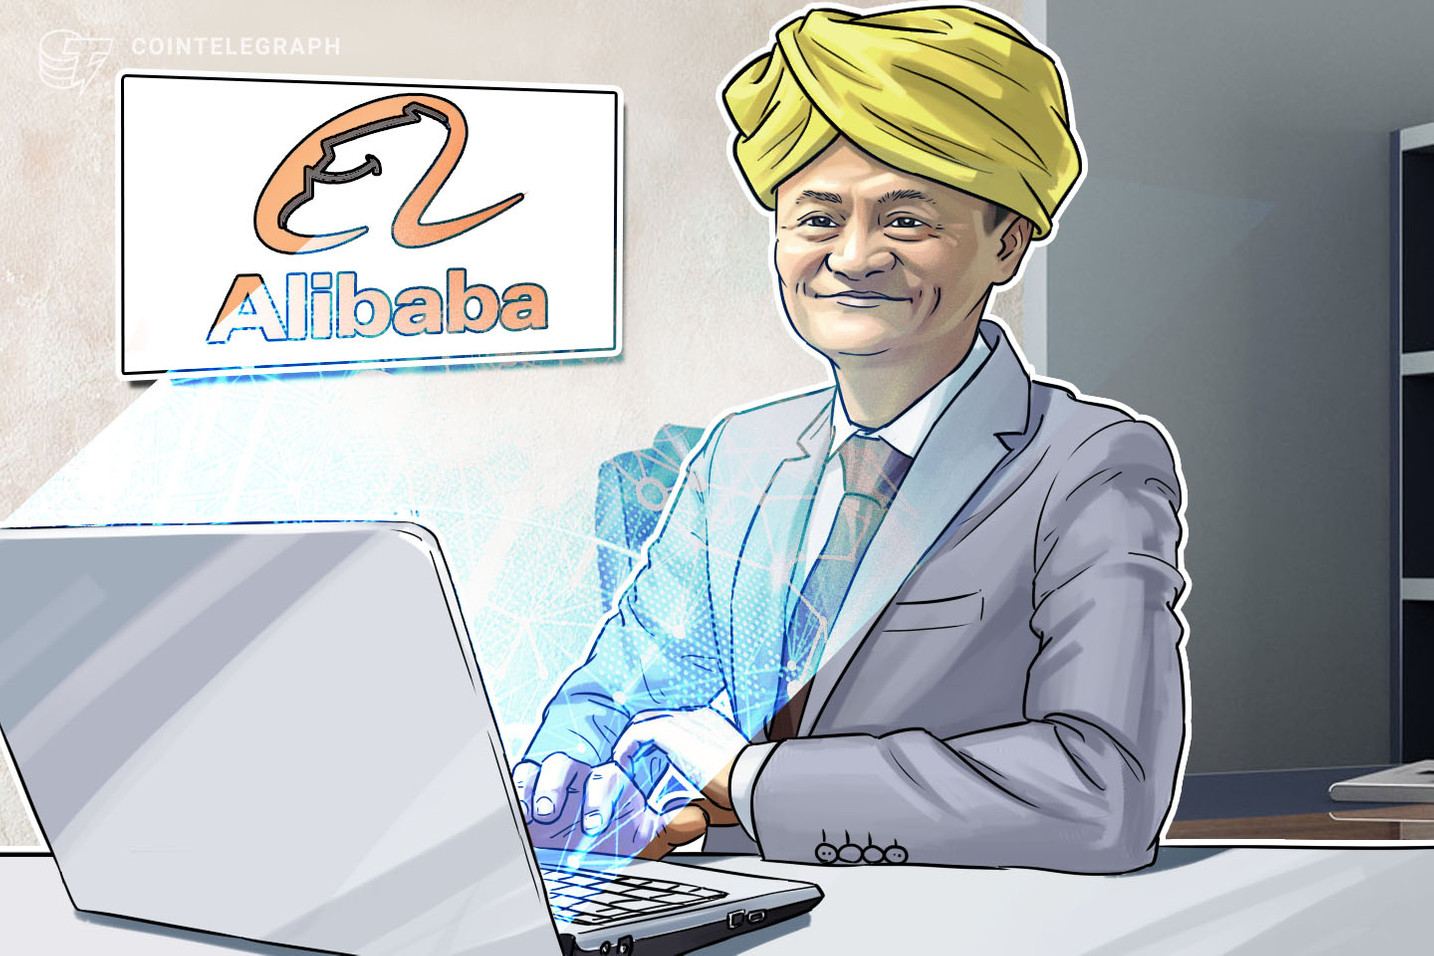 E-Commerce Giant Alibaba to Integrate Blockchain Into Intellectual Property System